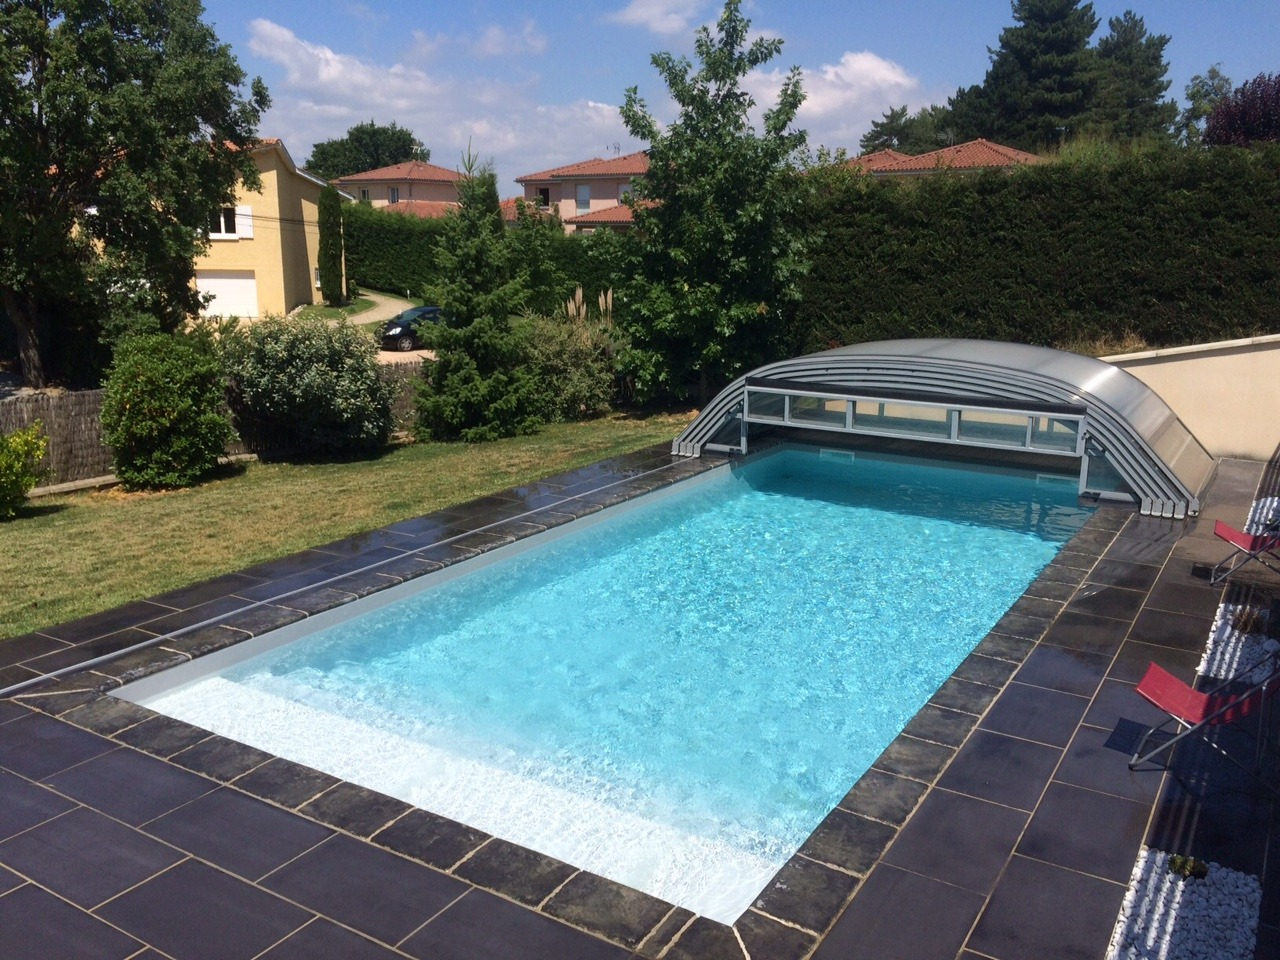 Elitys mianso abri de piscine bas t lescopique ec 39 creation for Abris de piscine